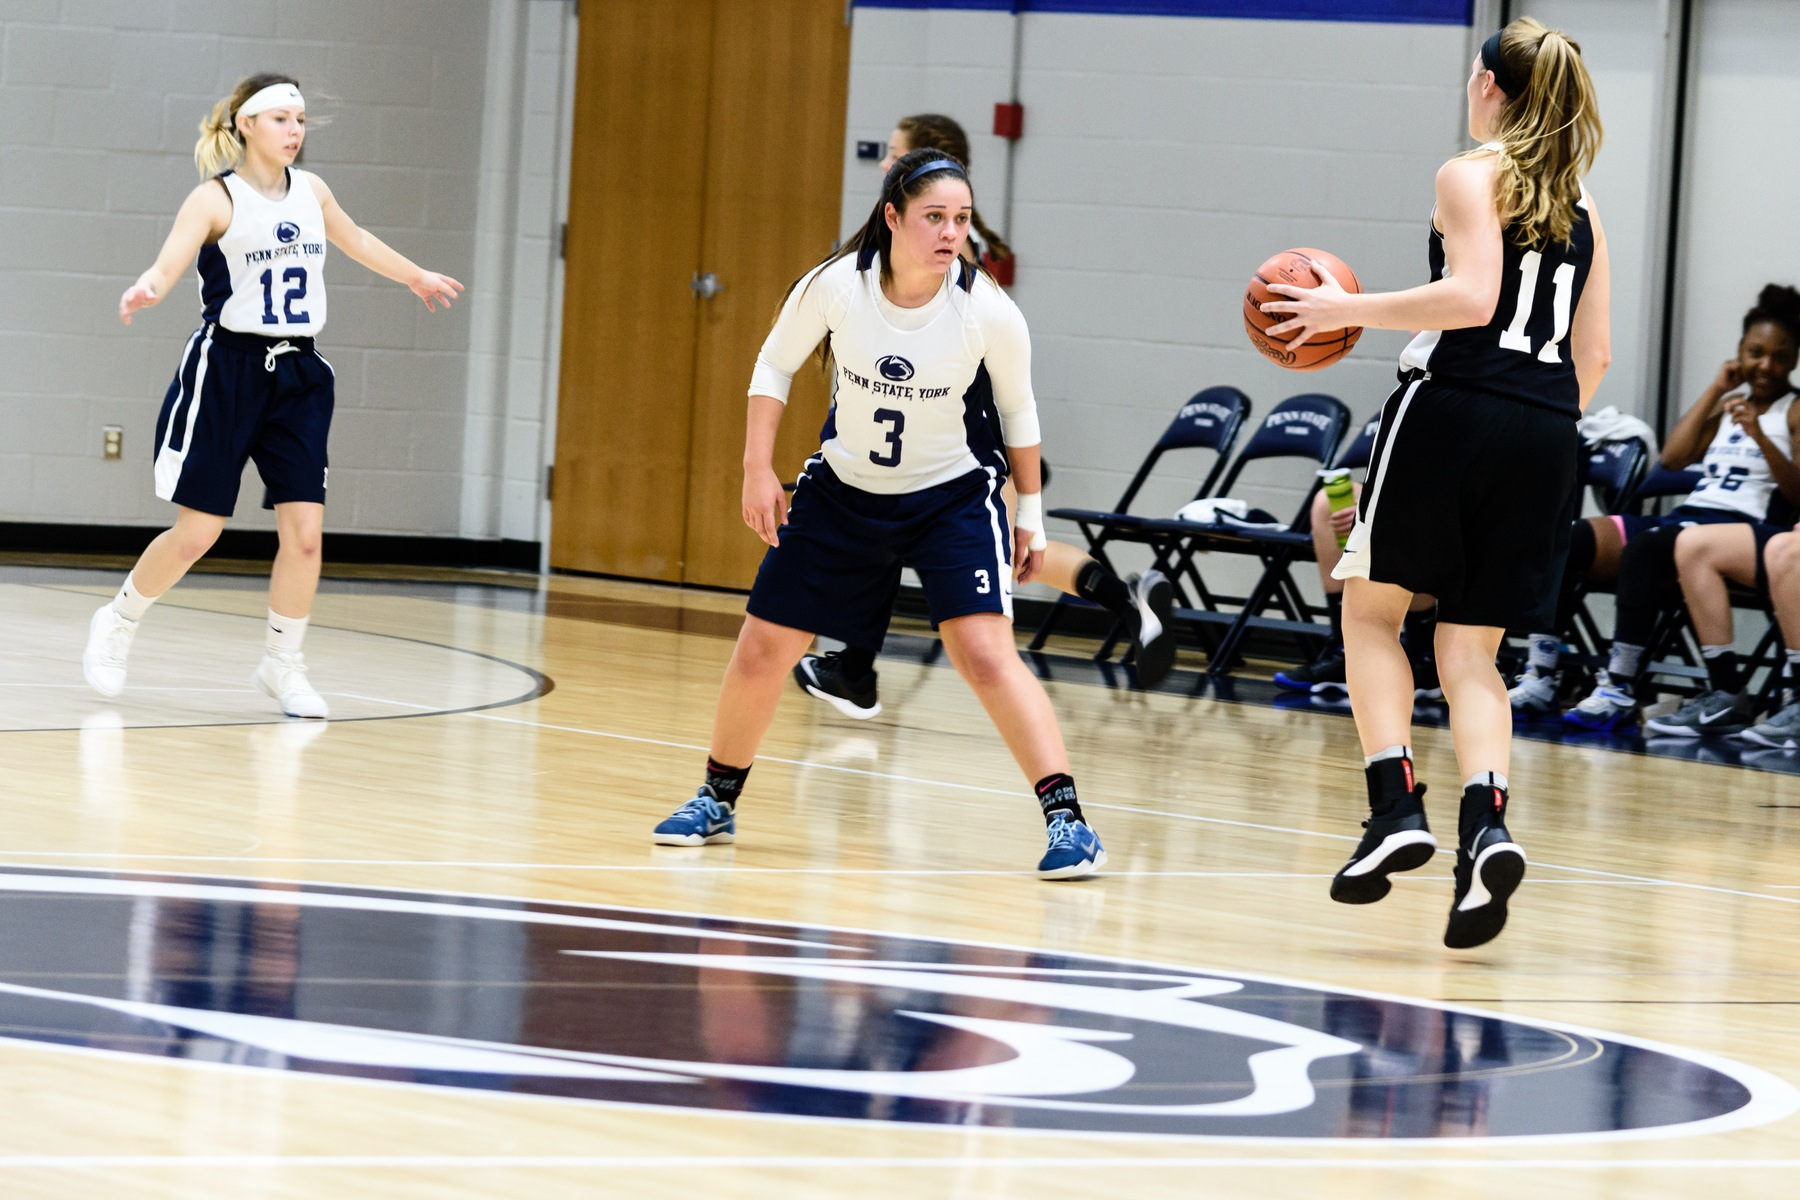 Emily Colon (#3) defends during a scrimmage earlier this season.